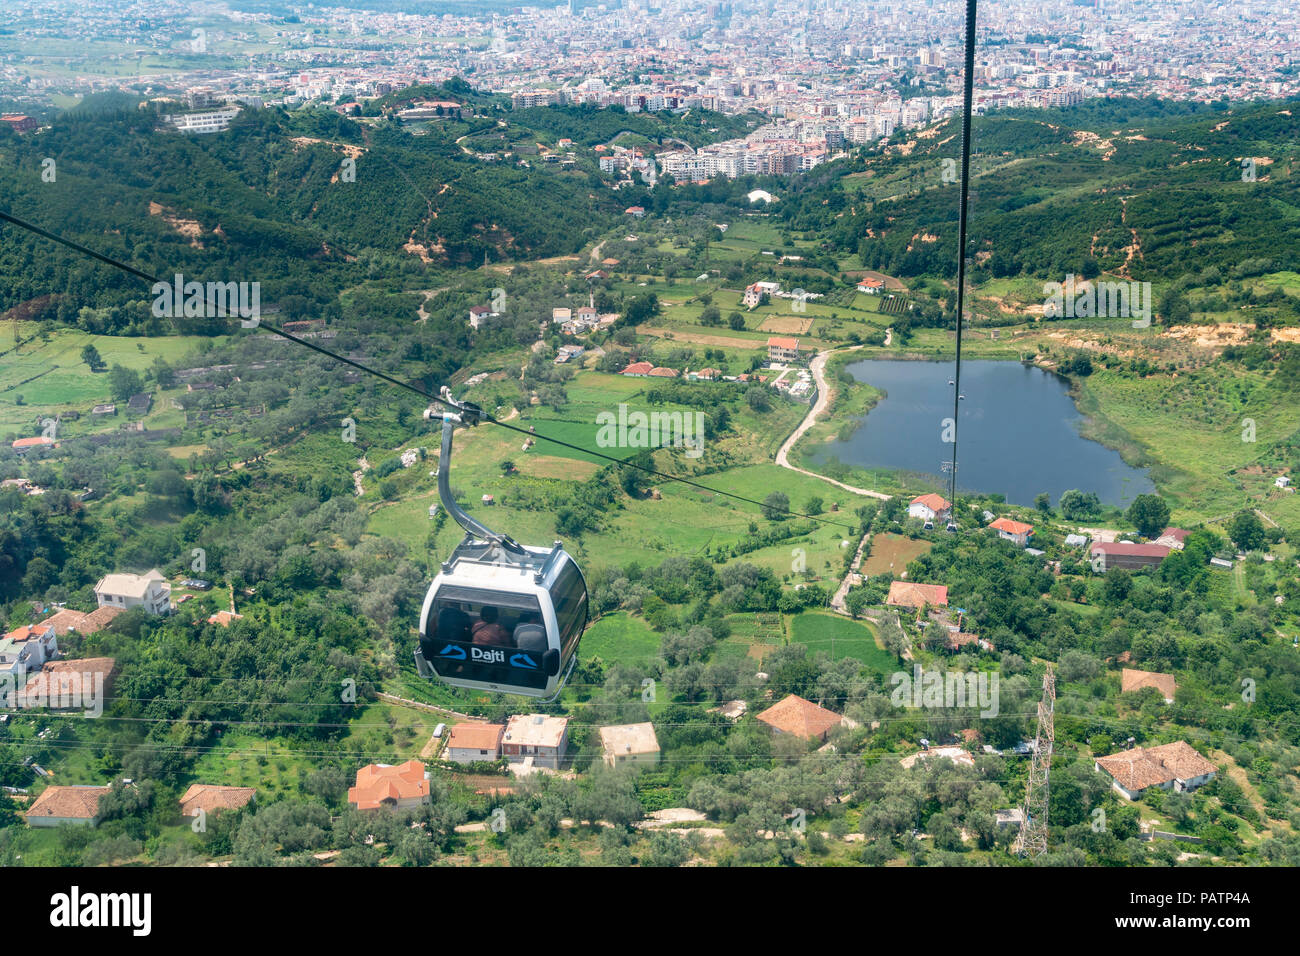 The Dajti Ekspres cableway which carries passengers up to Mount Dajti National Park on the edge of Tirana, Albania, Stock Photo